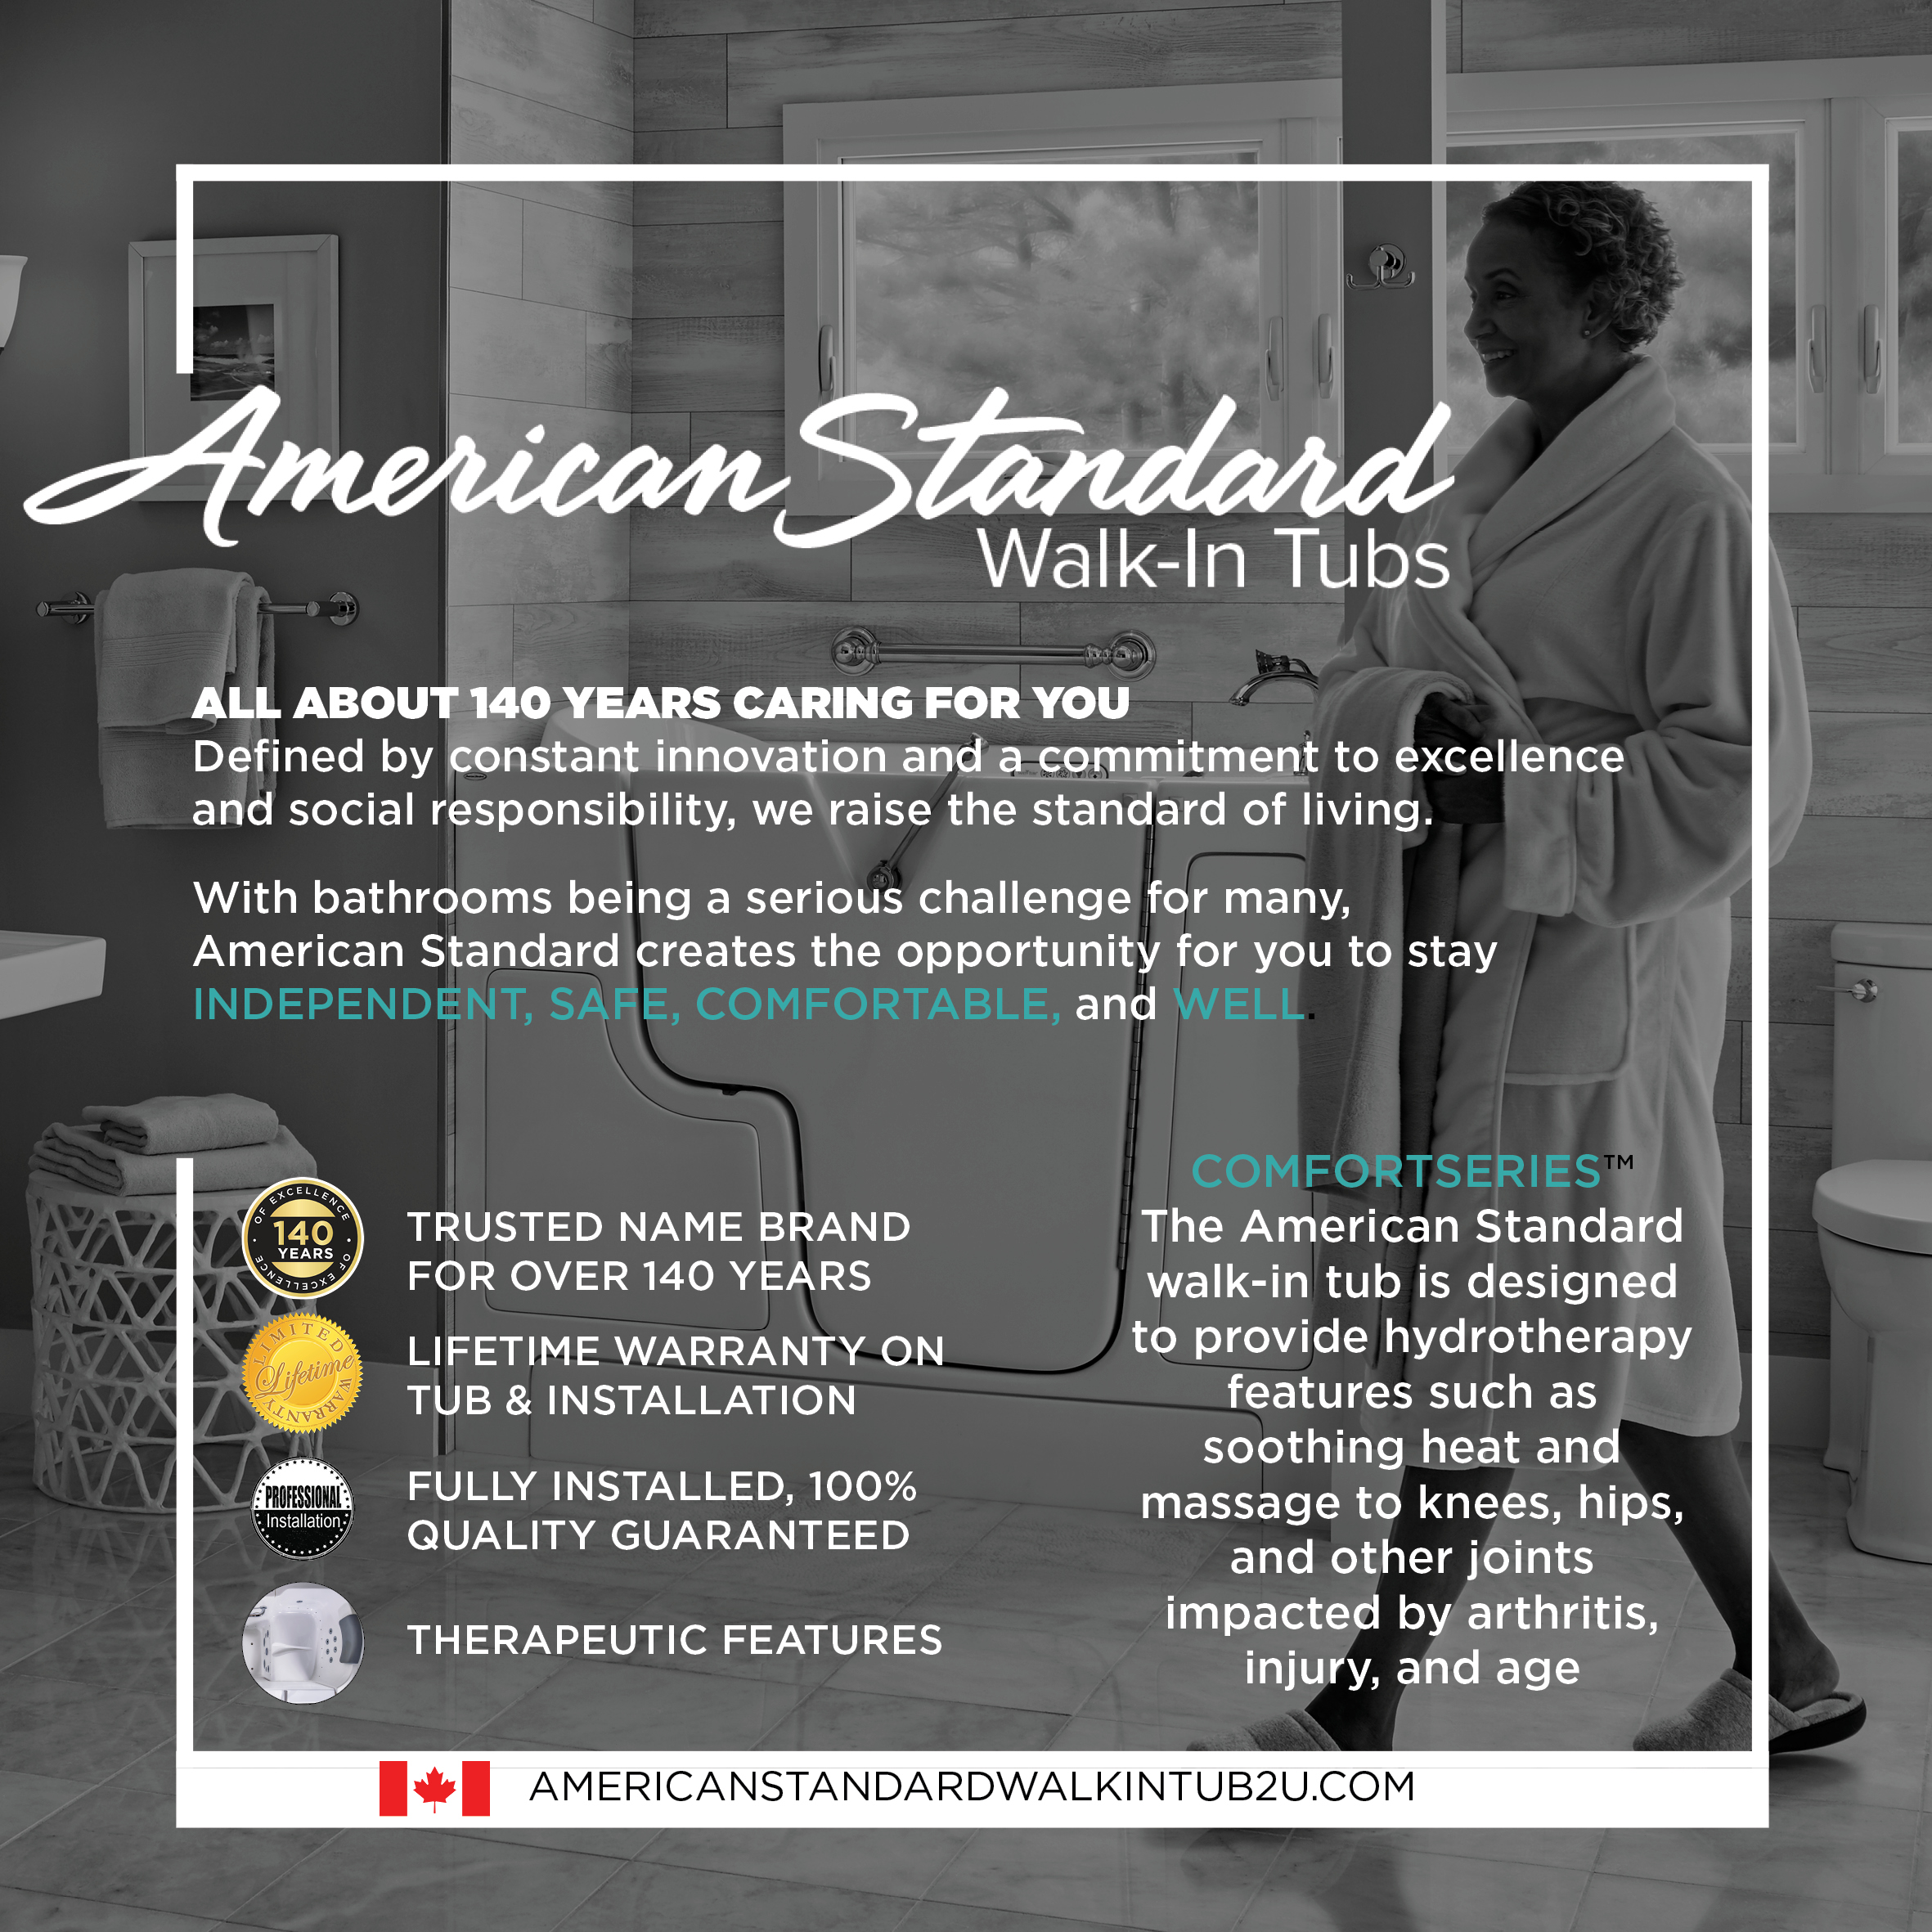 american standard walk-in tubs